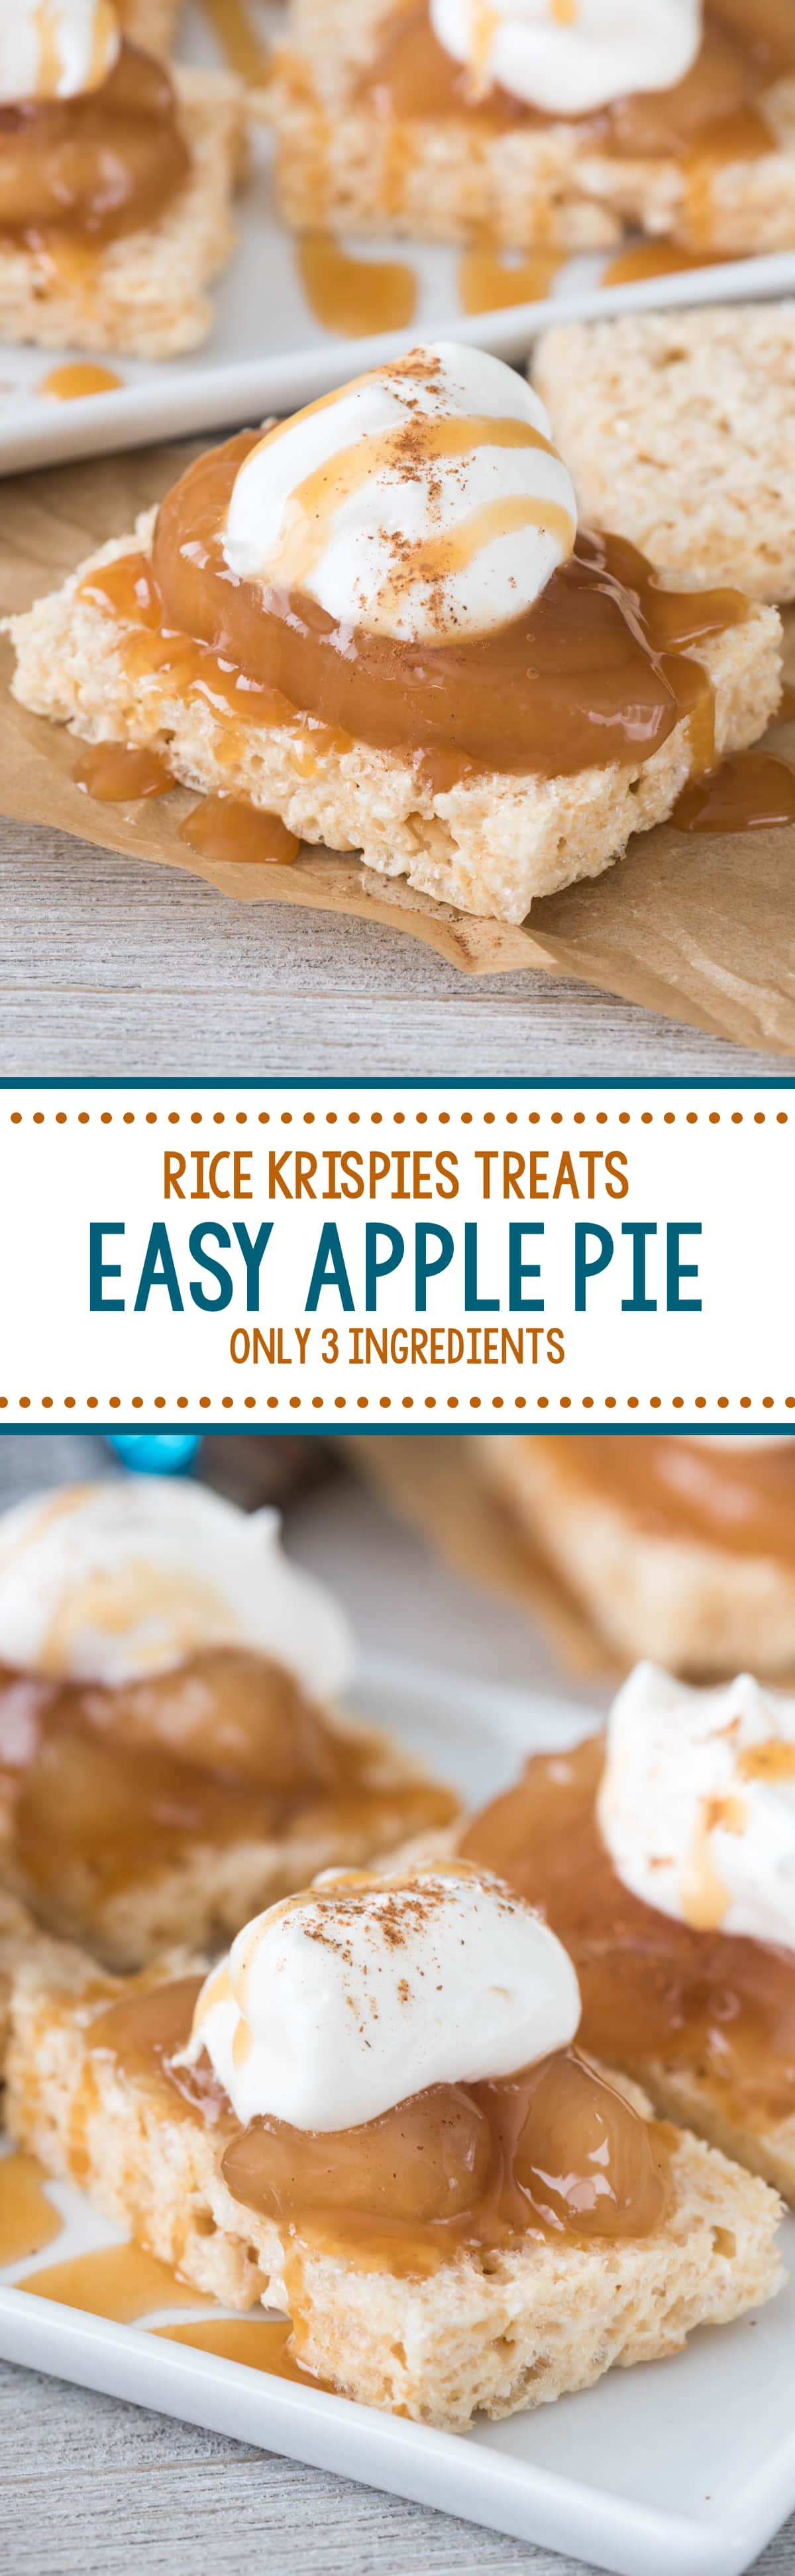 Rice Krispies Treats Easy Apple Pies - why use a pie crust when you can use a cereal treat? Only 3 ingredients, these pies are EASY!!